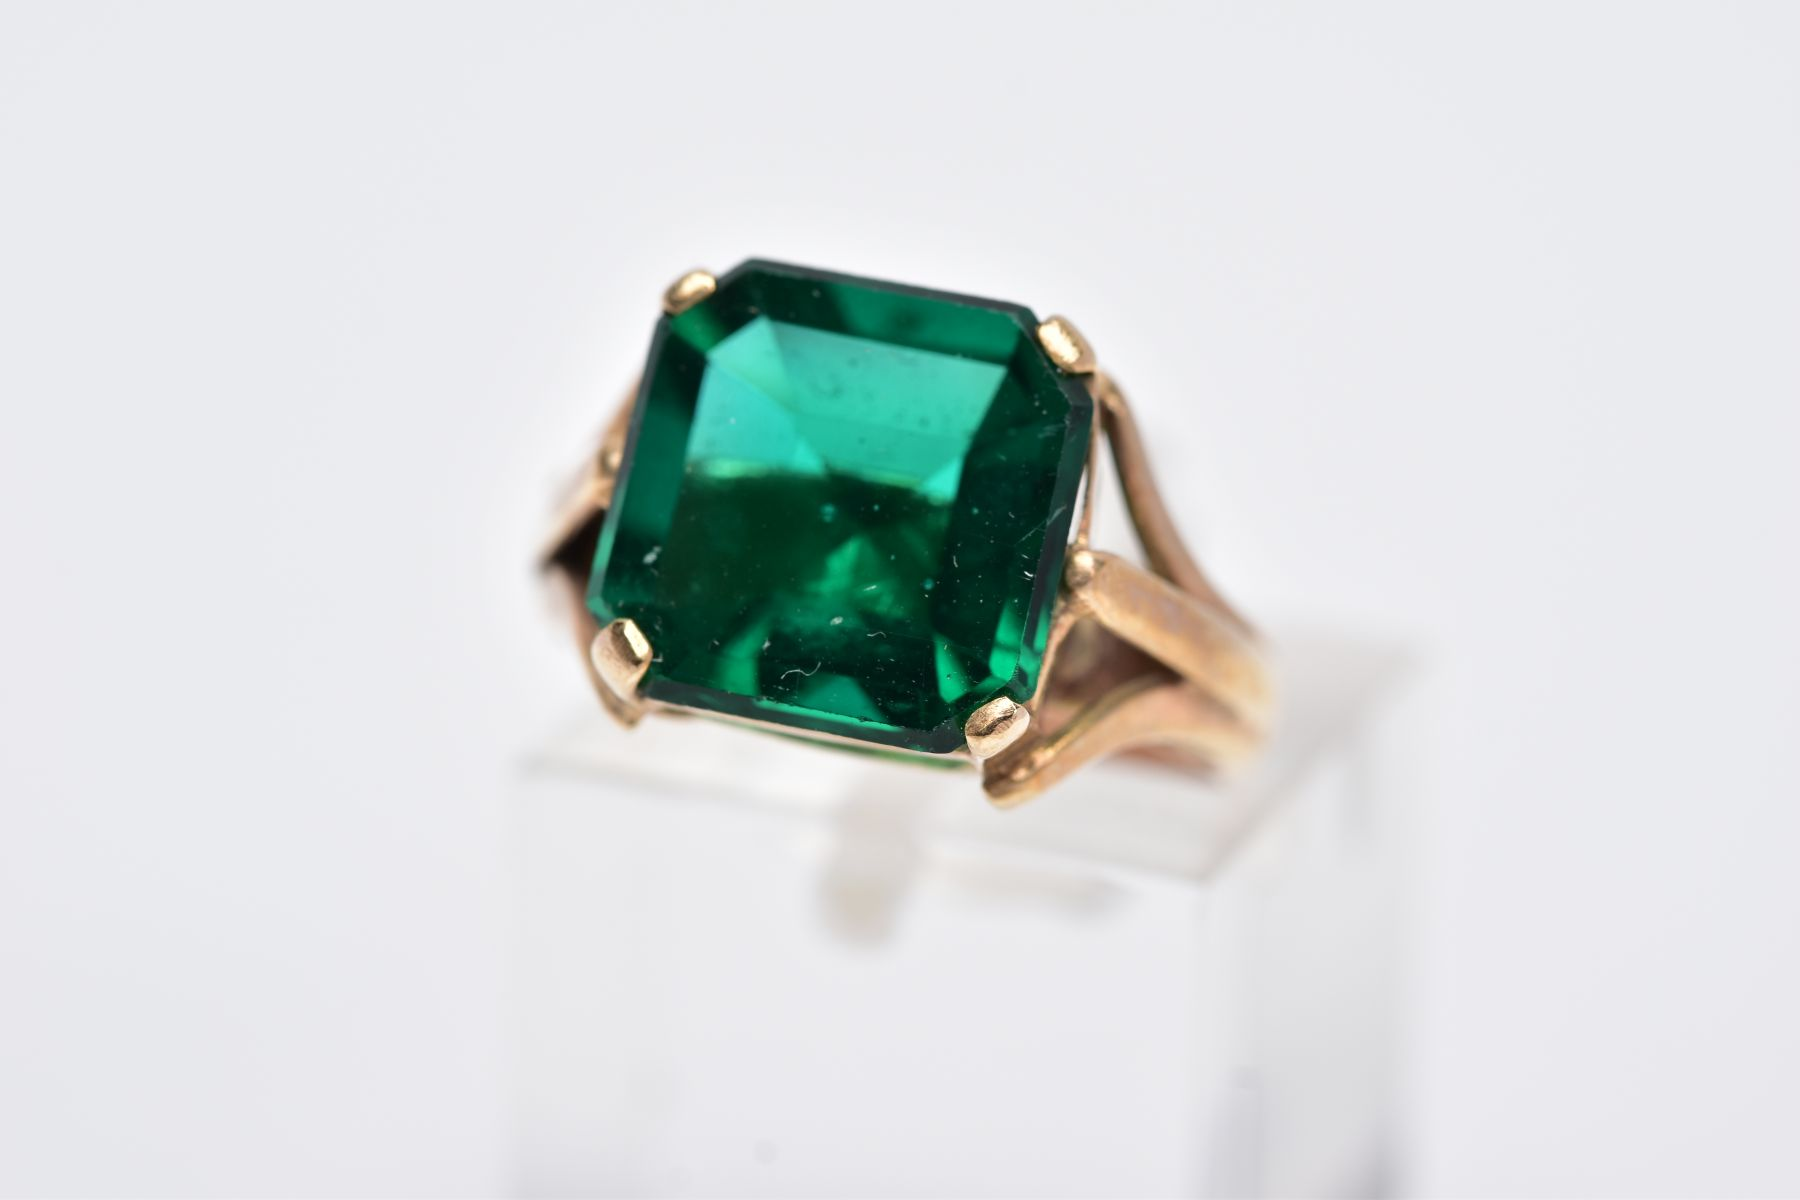 AN EARLY 20TH CENTURY 9CT GOLD SINGLE STONE GREEN PASTE RING, paste stone measuring approximately